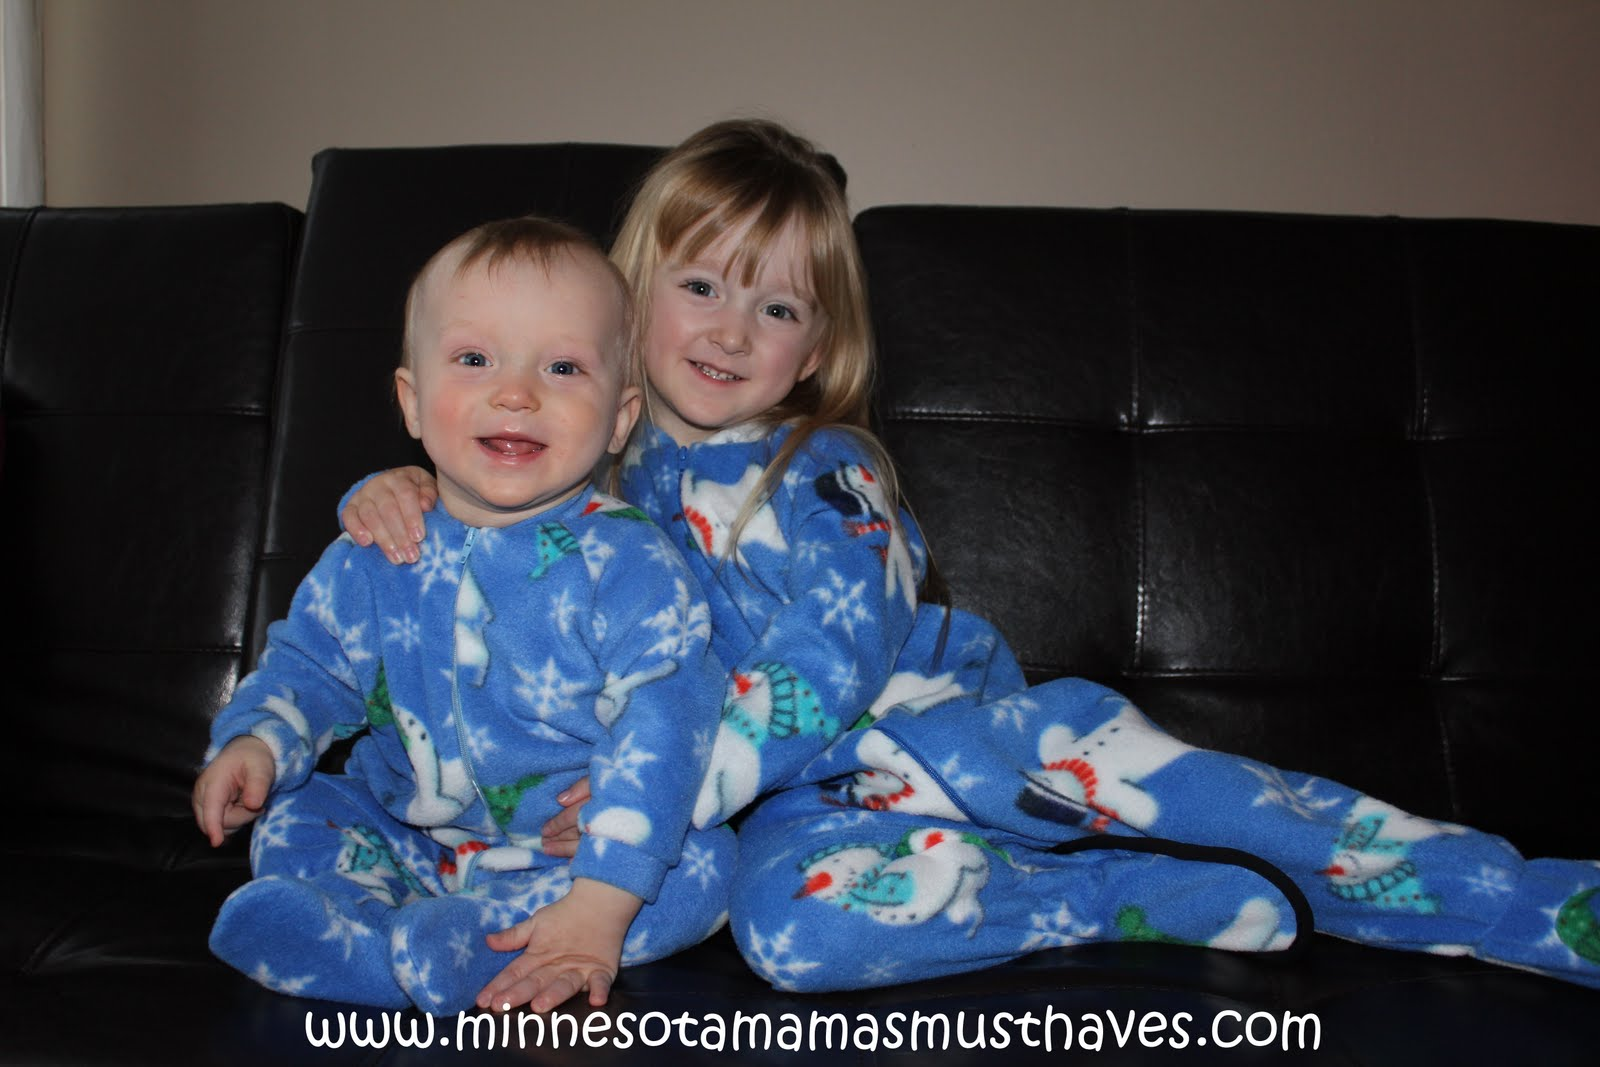 551448b931 I just think the kids look adorable in these matching PJs and I m really  happy with the quality of them. I absolutely love that you can get the  whole family ...